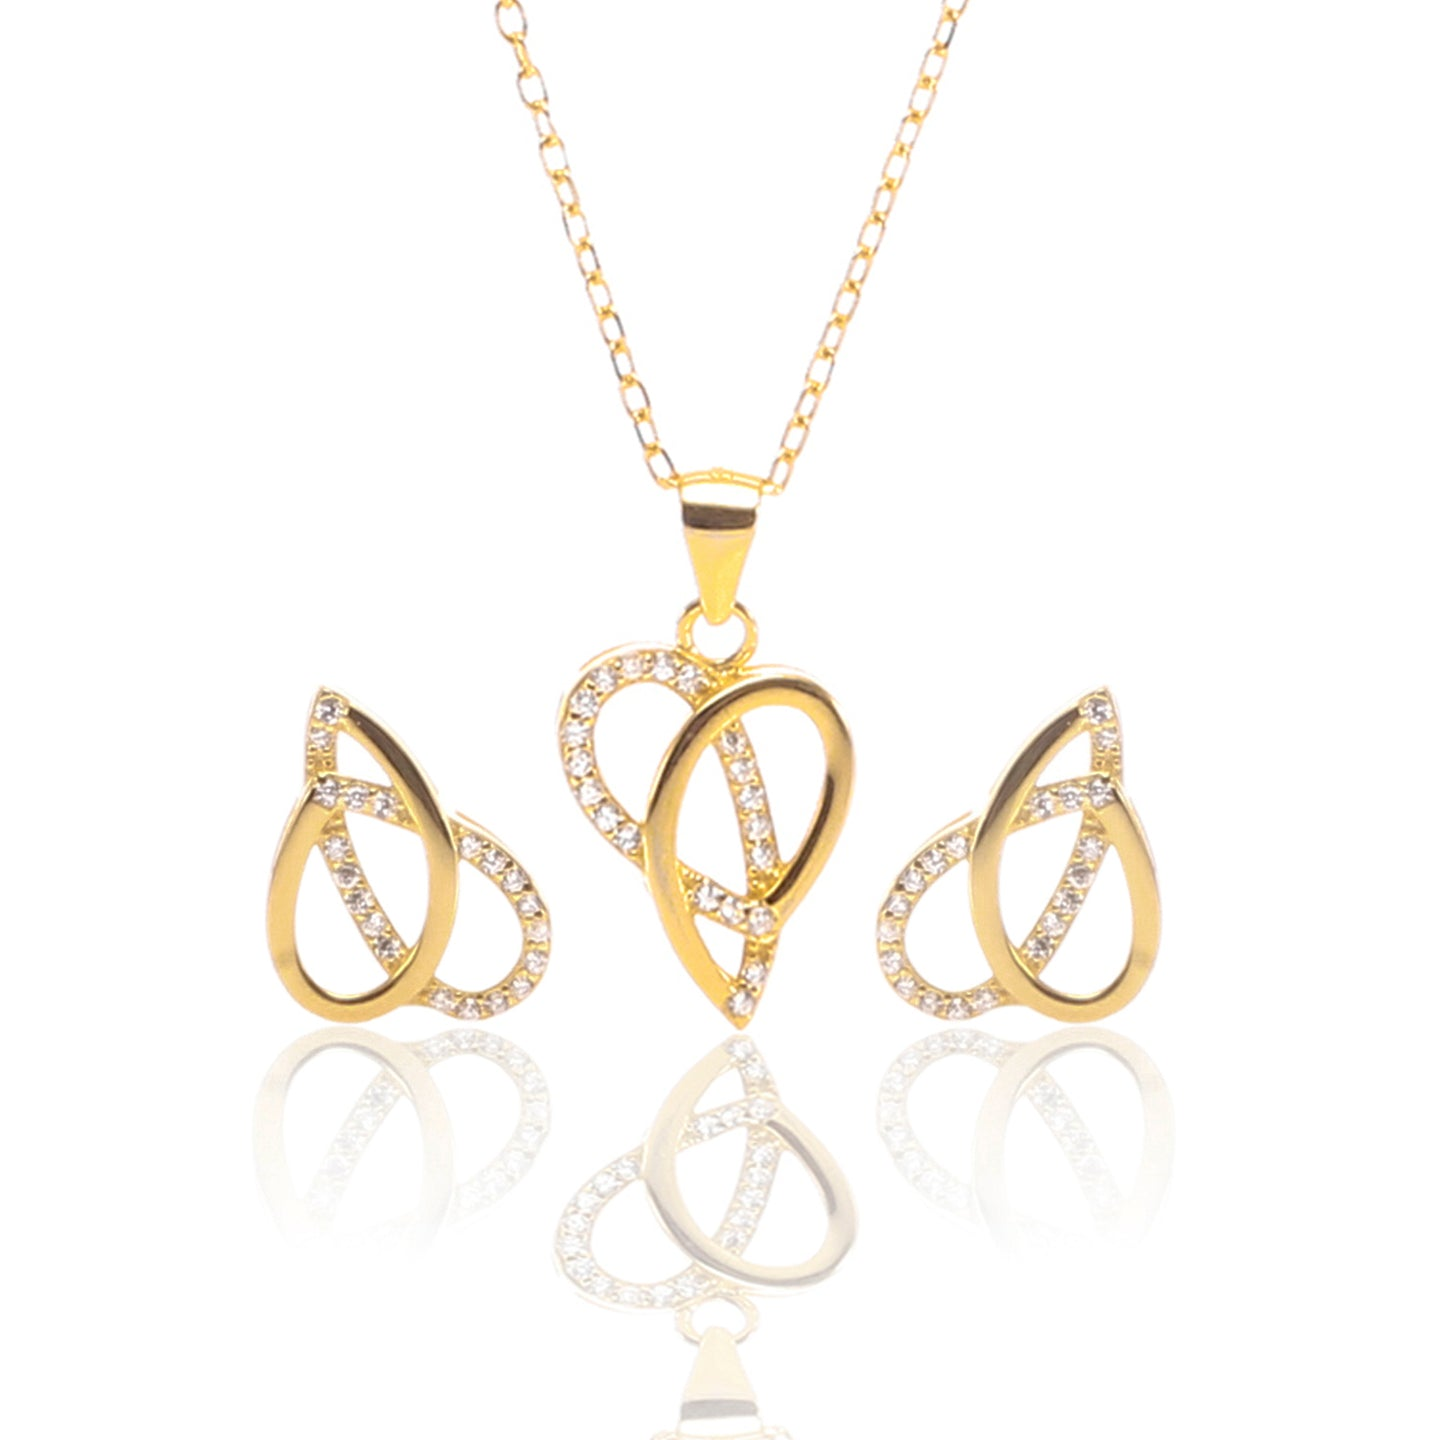 Ribbons of Love Pendant Necklace and Earrings Set - ARJW1007GD - ARCADIO LIFESTYLE